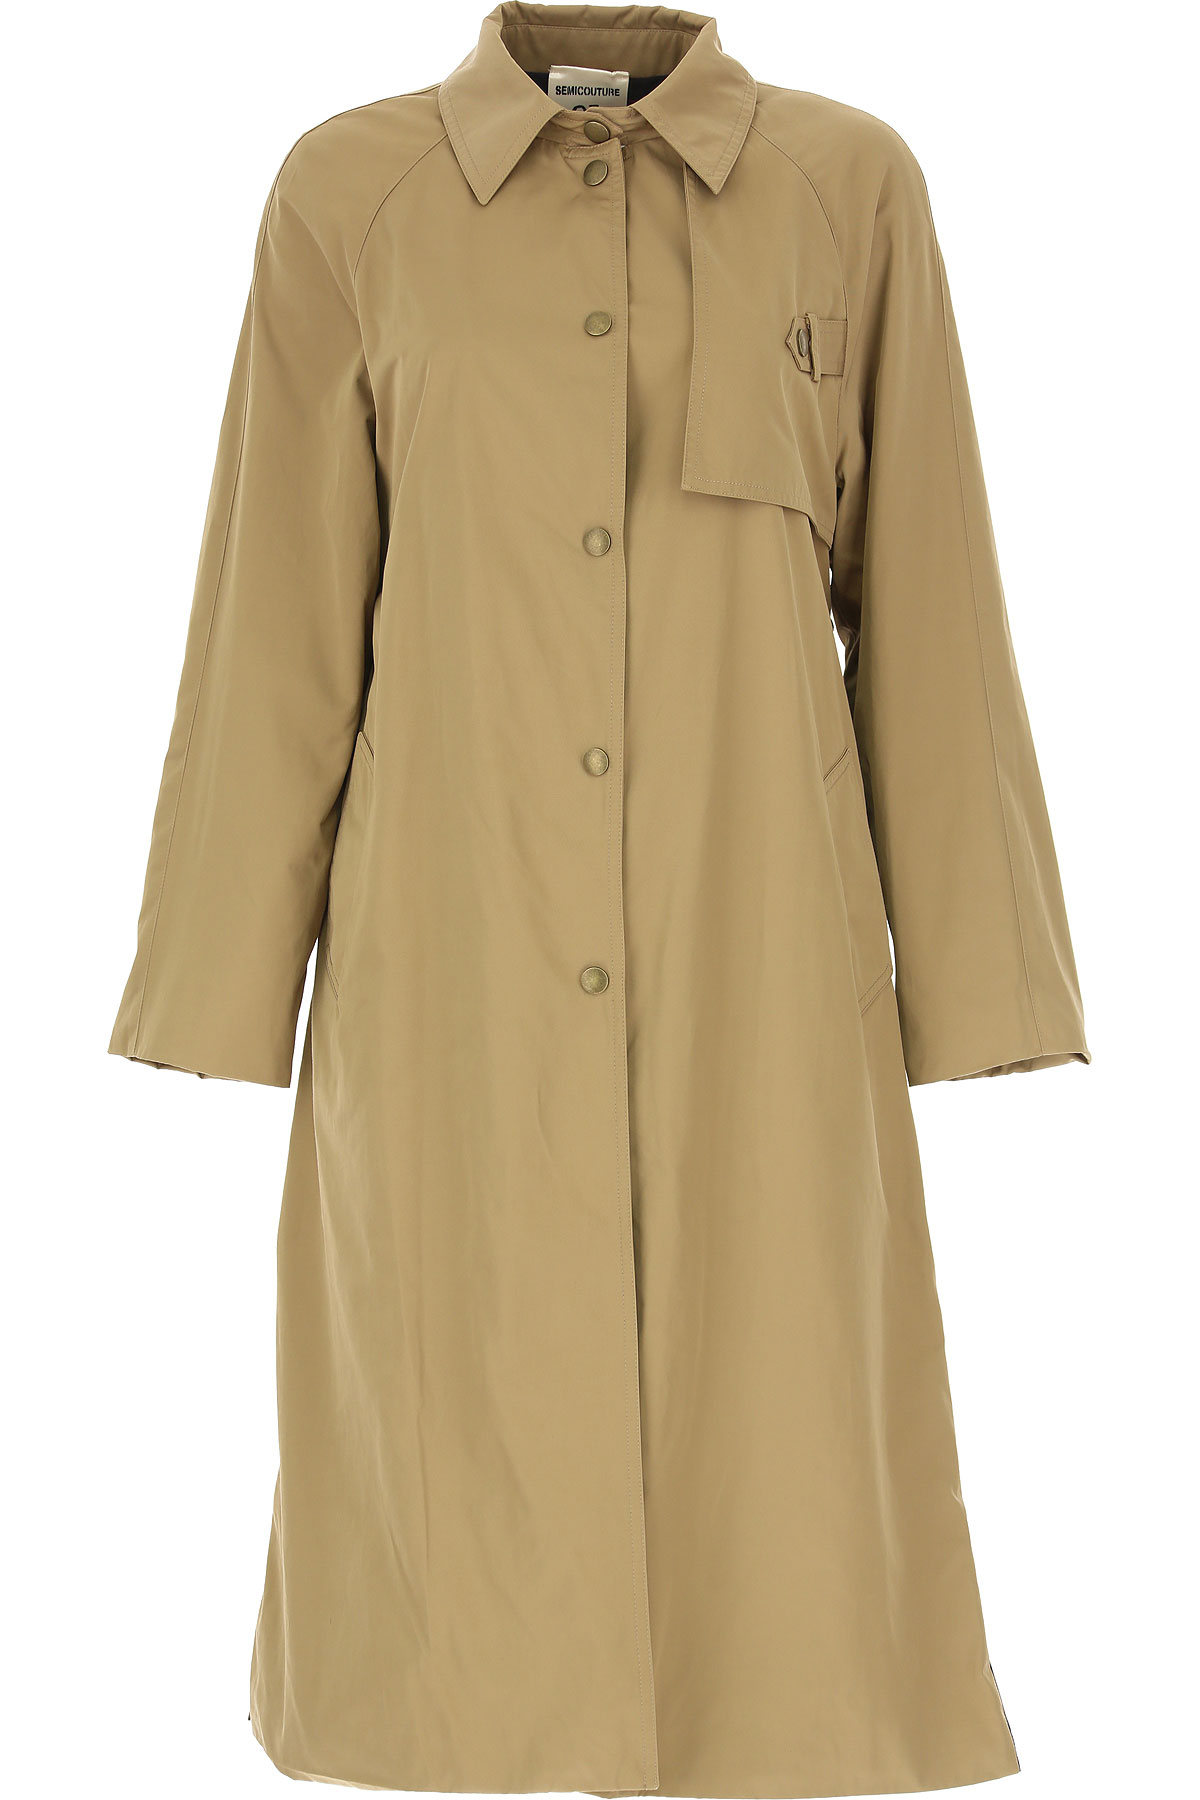 Semicouture Manteau Femme, Beige, Polyester, 2019, 40 M